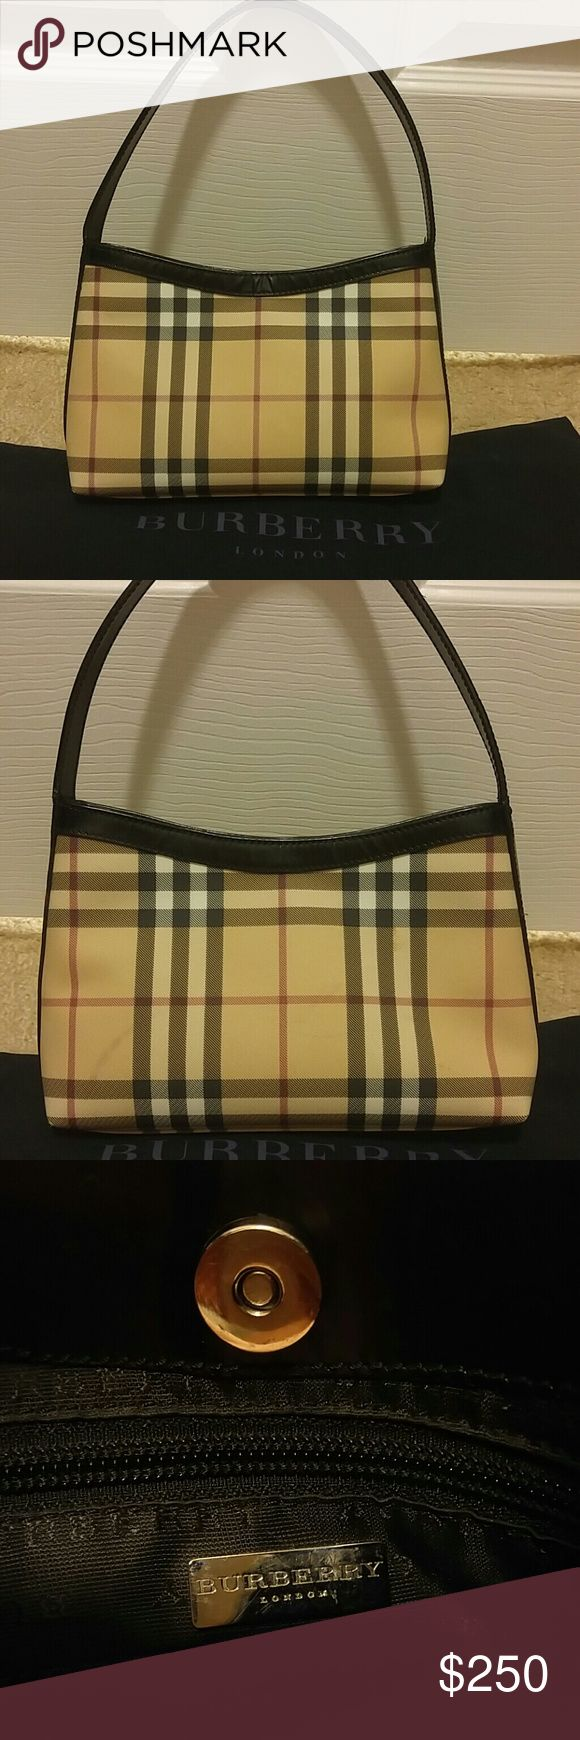 AUTHENTIC SMALL BURBERRY BAG Gorgeous Burberry tote complete with original dust bag. Scuff marks are shown in photos and price reflects the gently loved condition of the bag. This tote measures 10 in. X 5.5 in. Treat yourself.  :) Burberry Bags Totes